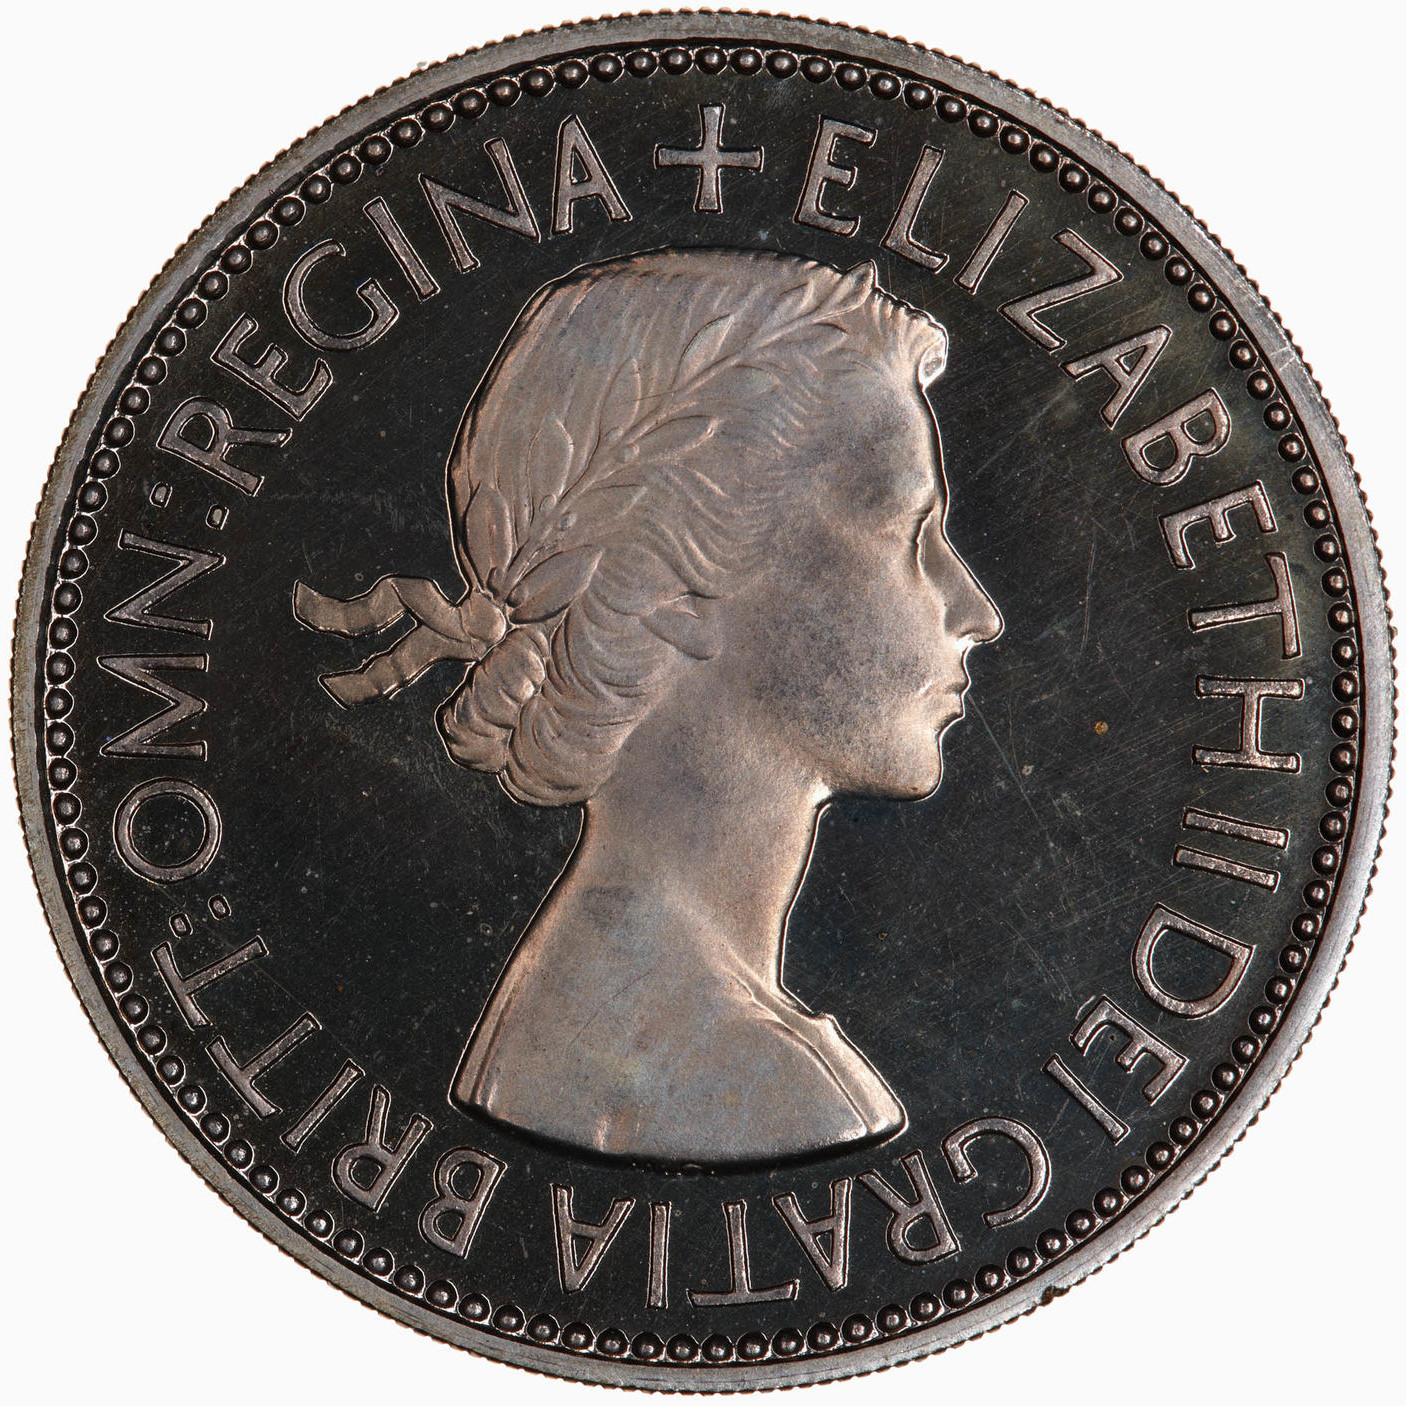 Two Shillings (Florin) 1953: Photo Proof Coin - Florin, Elizabeth II, Great Britain, 1953